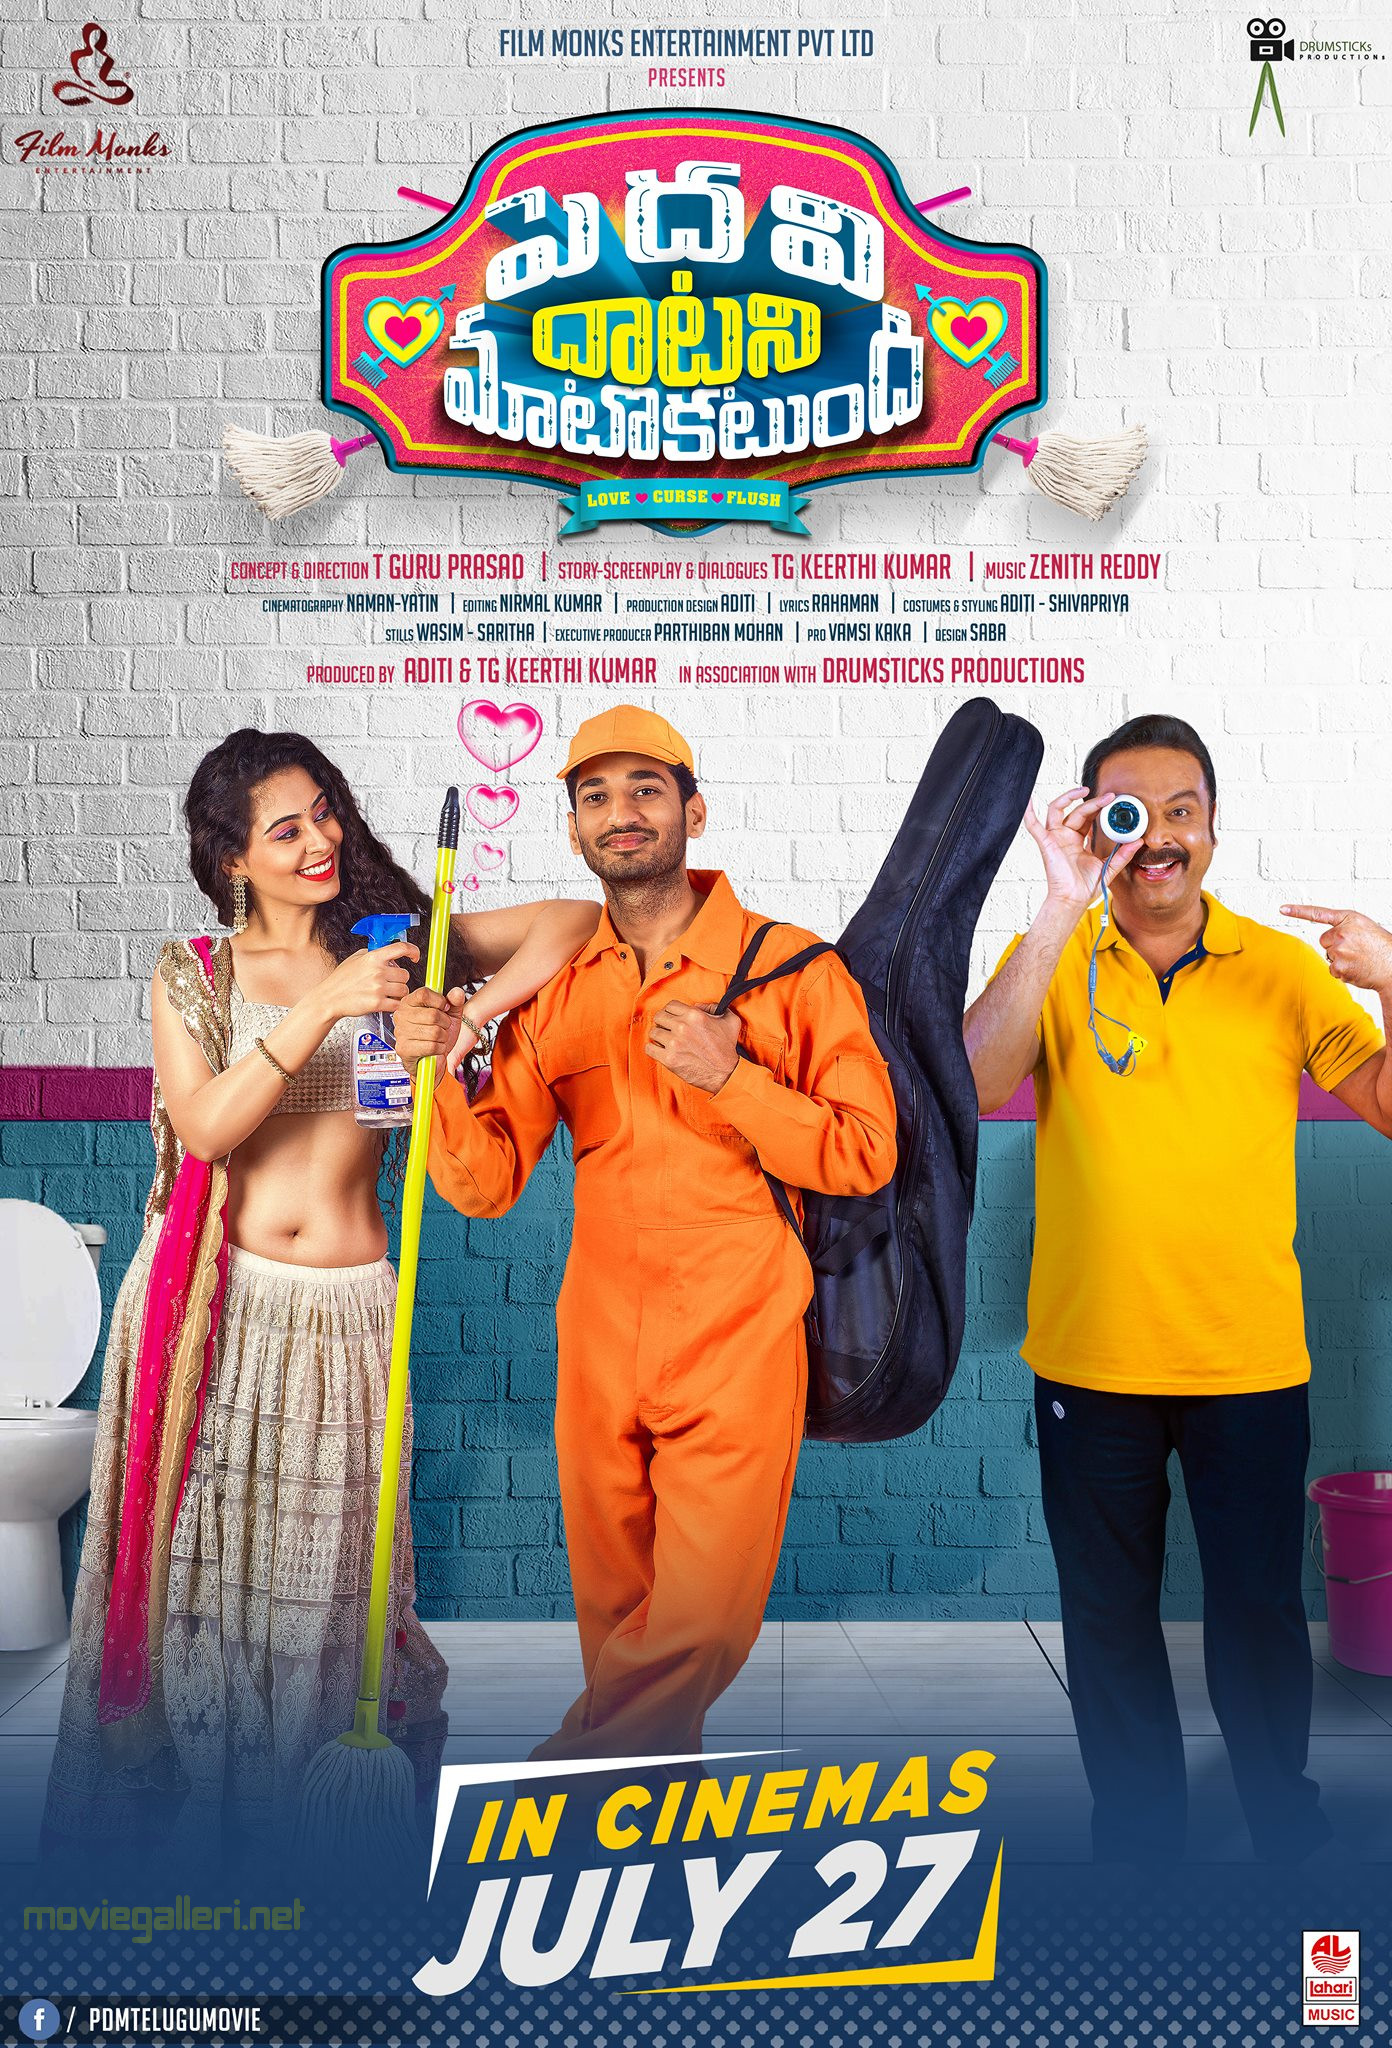 Ravan Payal Wadhwa Naresh Pedavi Datani Matokatundi Movie Release Date July 27th Poster HD